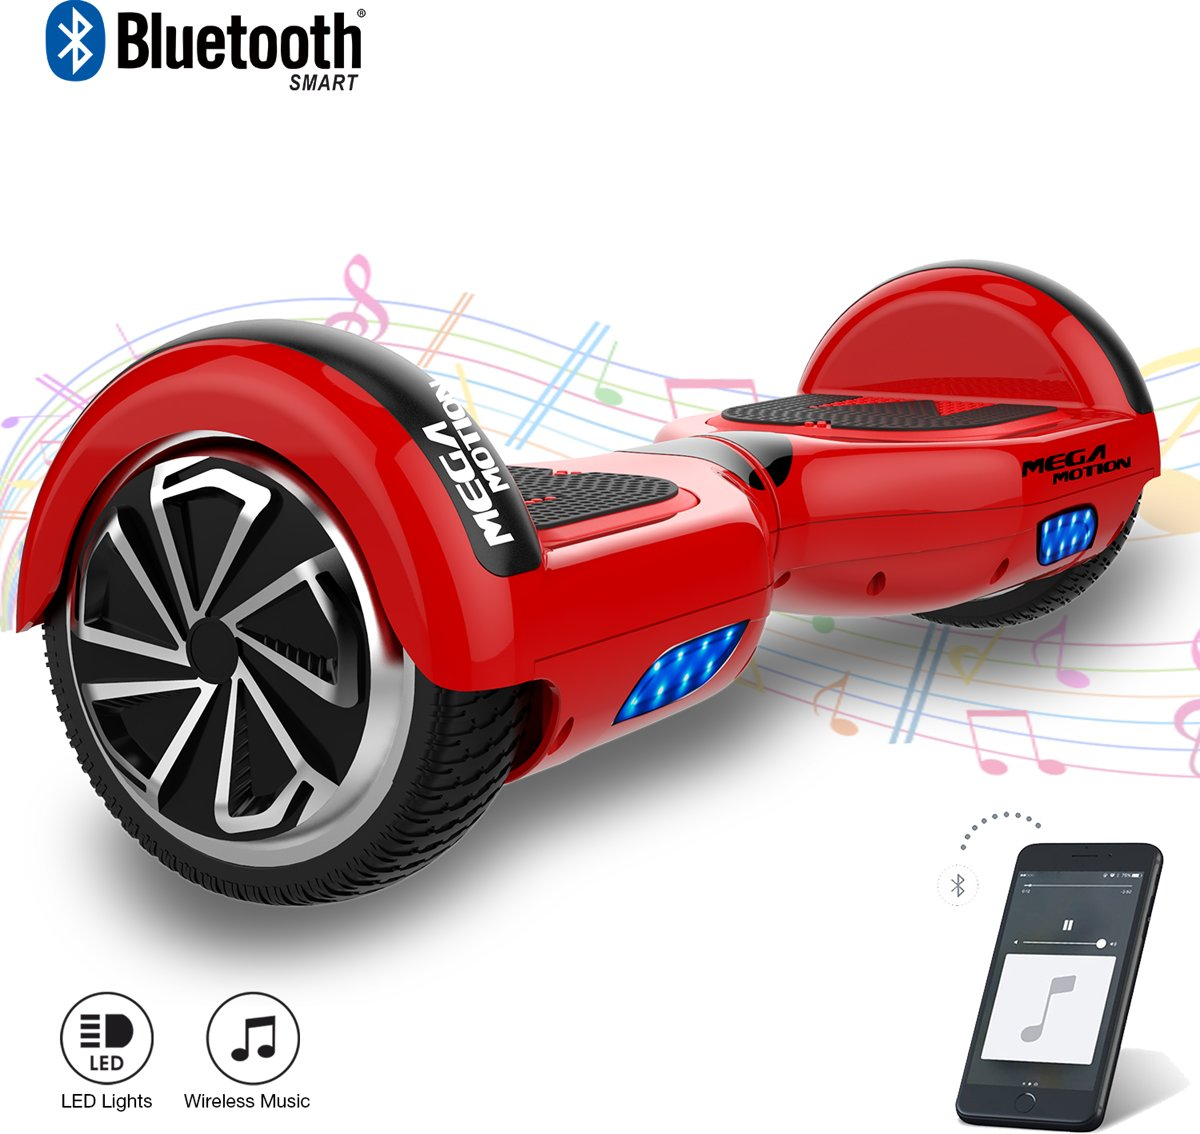 MEGA MOTION Self Balancing Smart Hoverboard Balance Scooter 6.5 inch/ V.5 Bluetooth speakers/ LED Verlichting /speciaal ontwerp - Rood